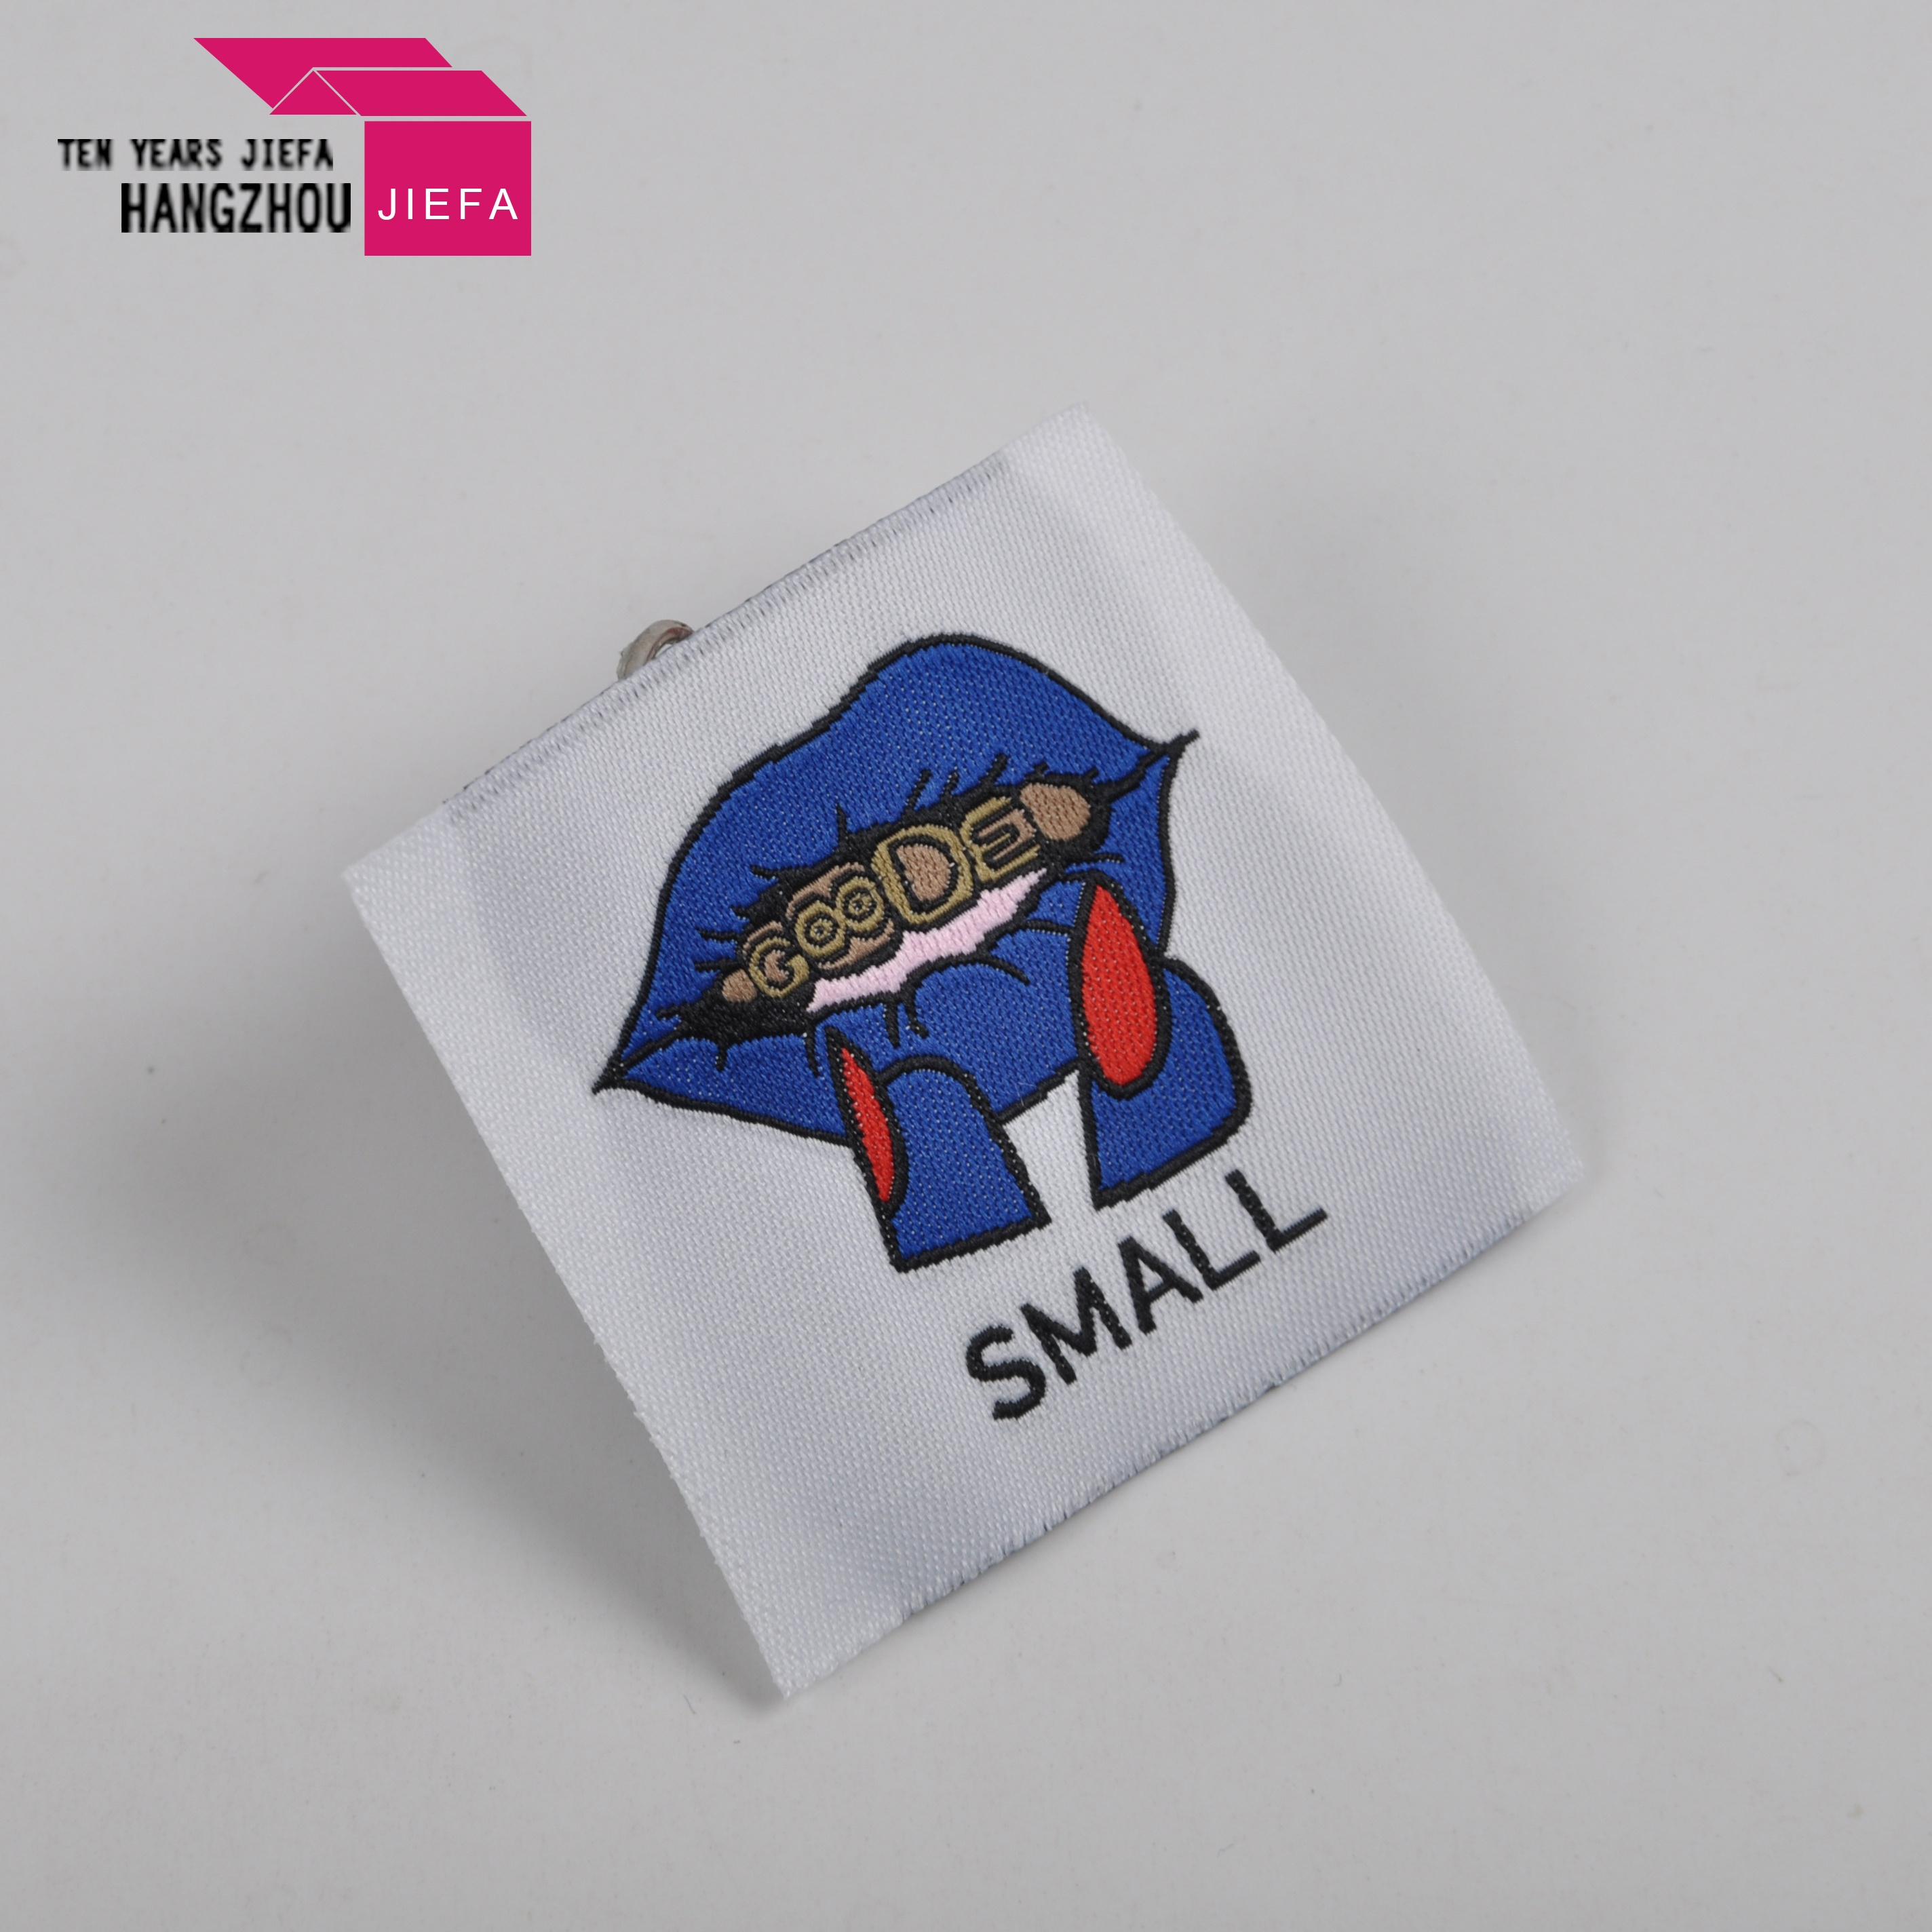 Clothing tag maker custom fabric/woven sewing labels